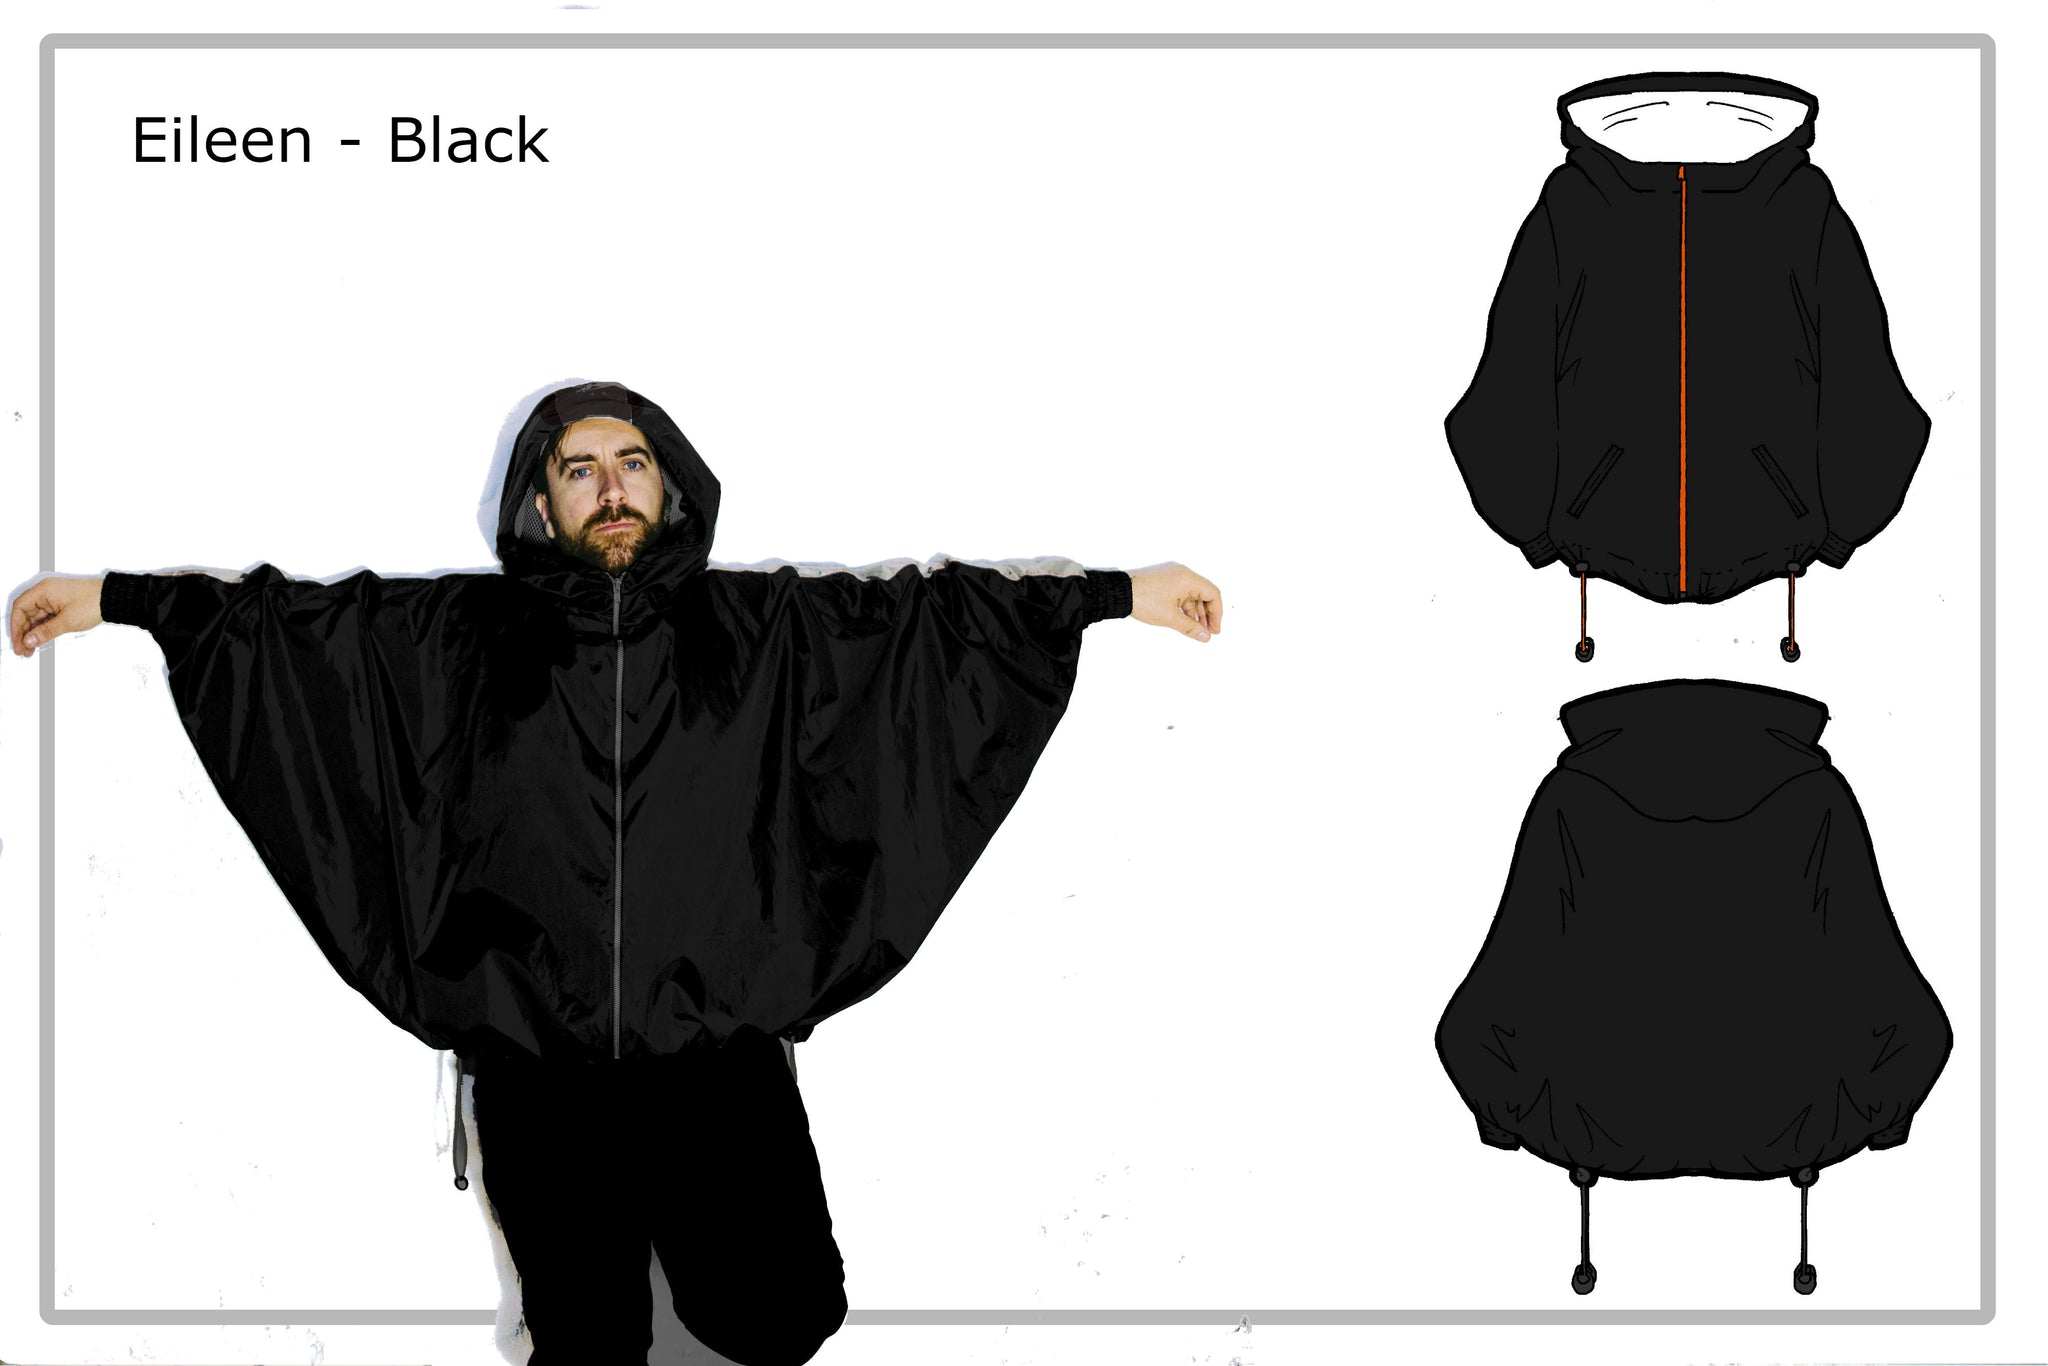 The Eileen - Showerproof Batwing Jacket